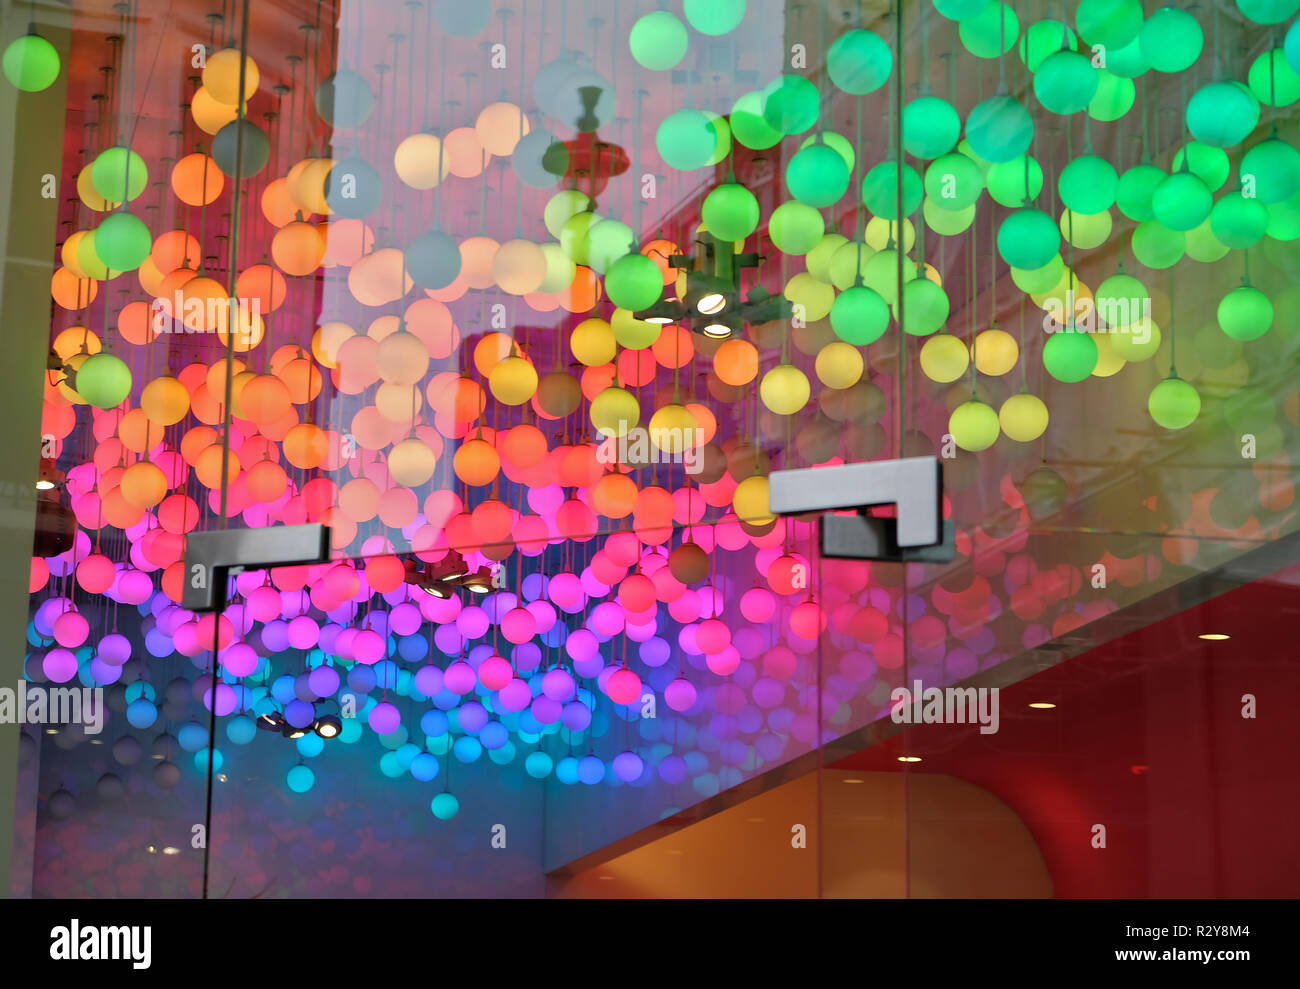 Varicoloured light bulbs hanging from above. - Stock Image